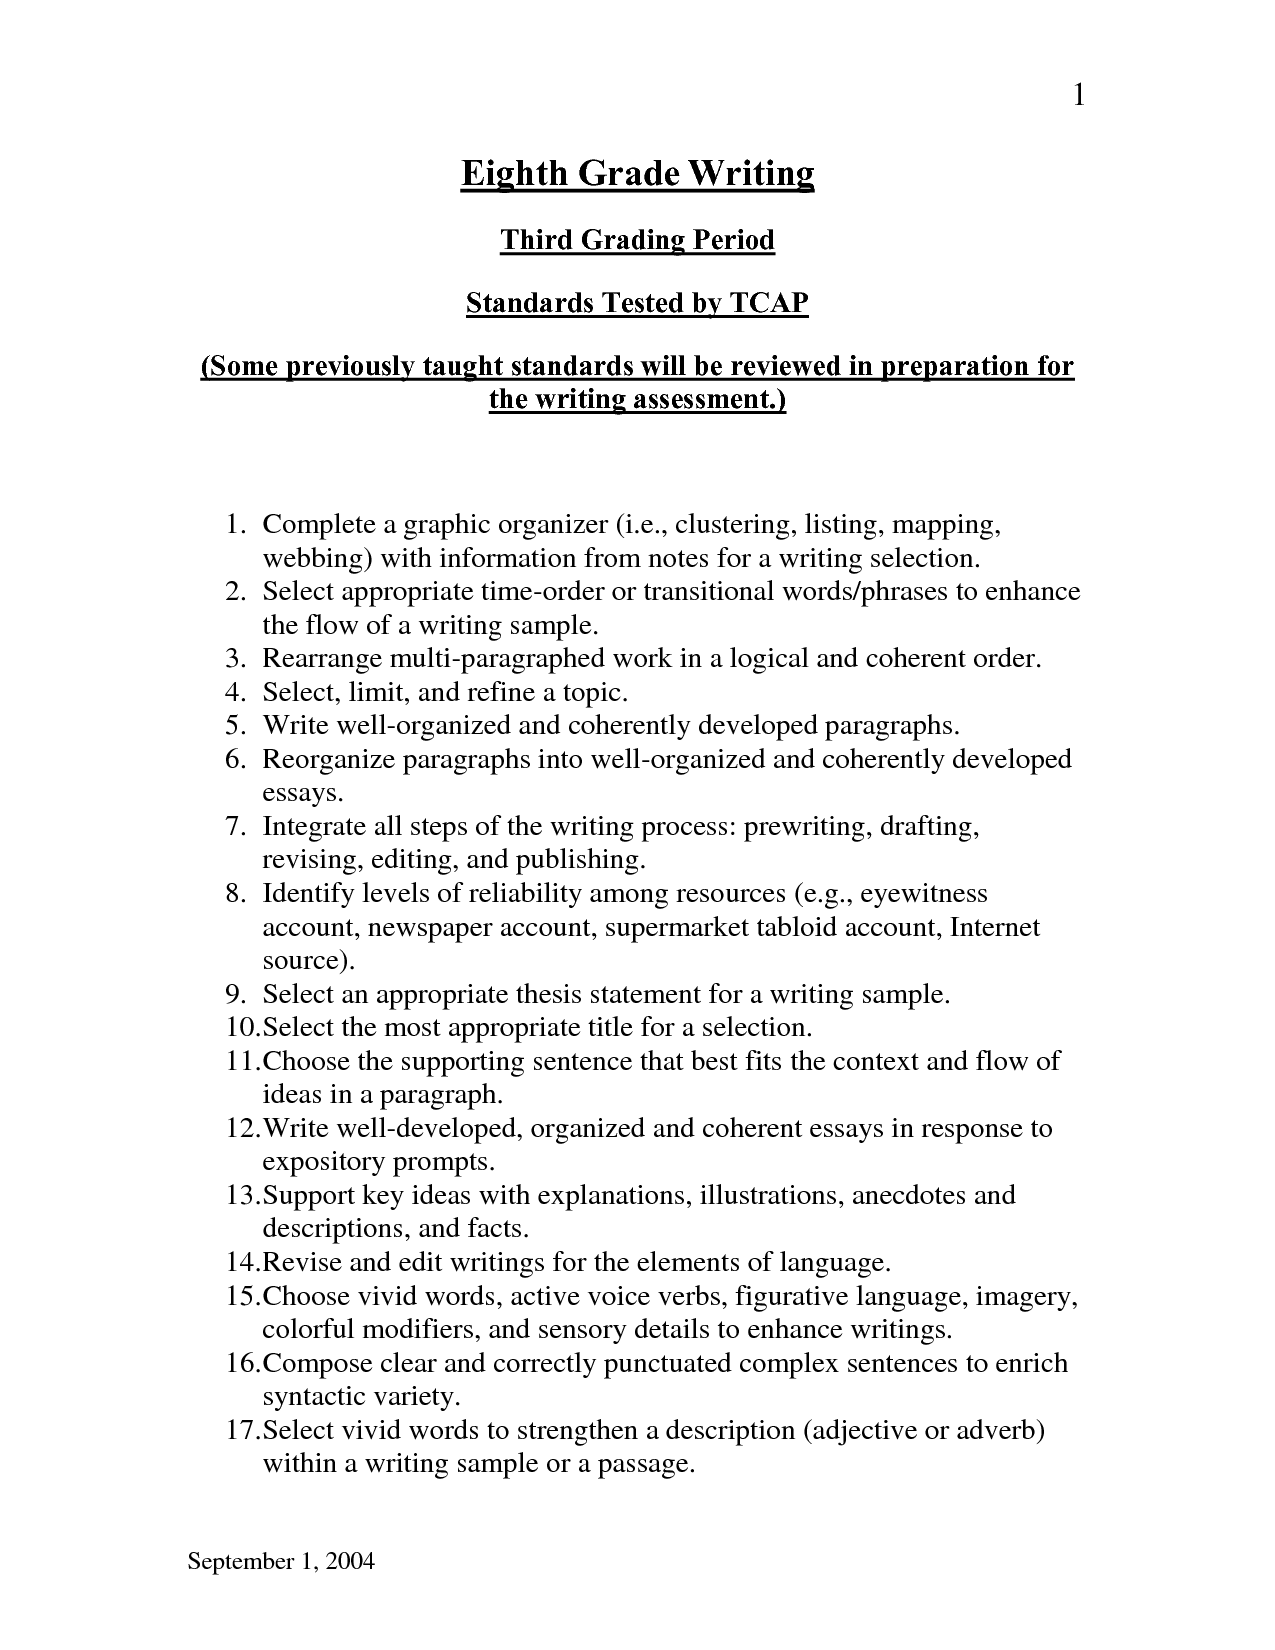 012 Essay Example What Is An Expository Writing Prompts For High School 1088622 Magnificent Powerpoint Are Some Topics Gcu Full